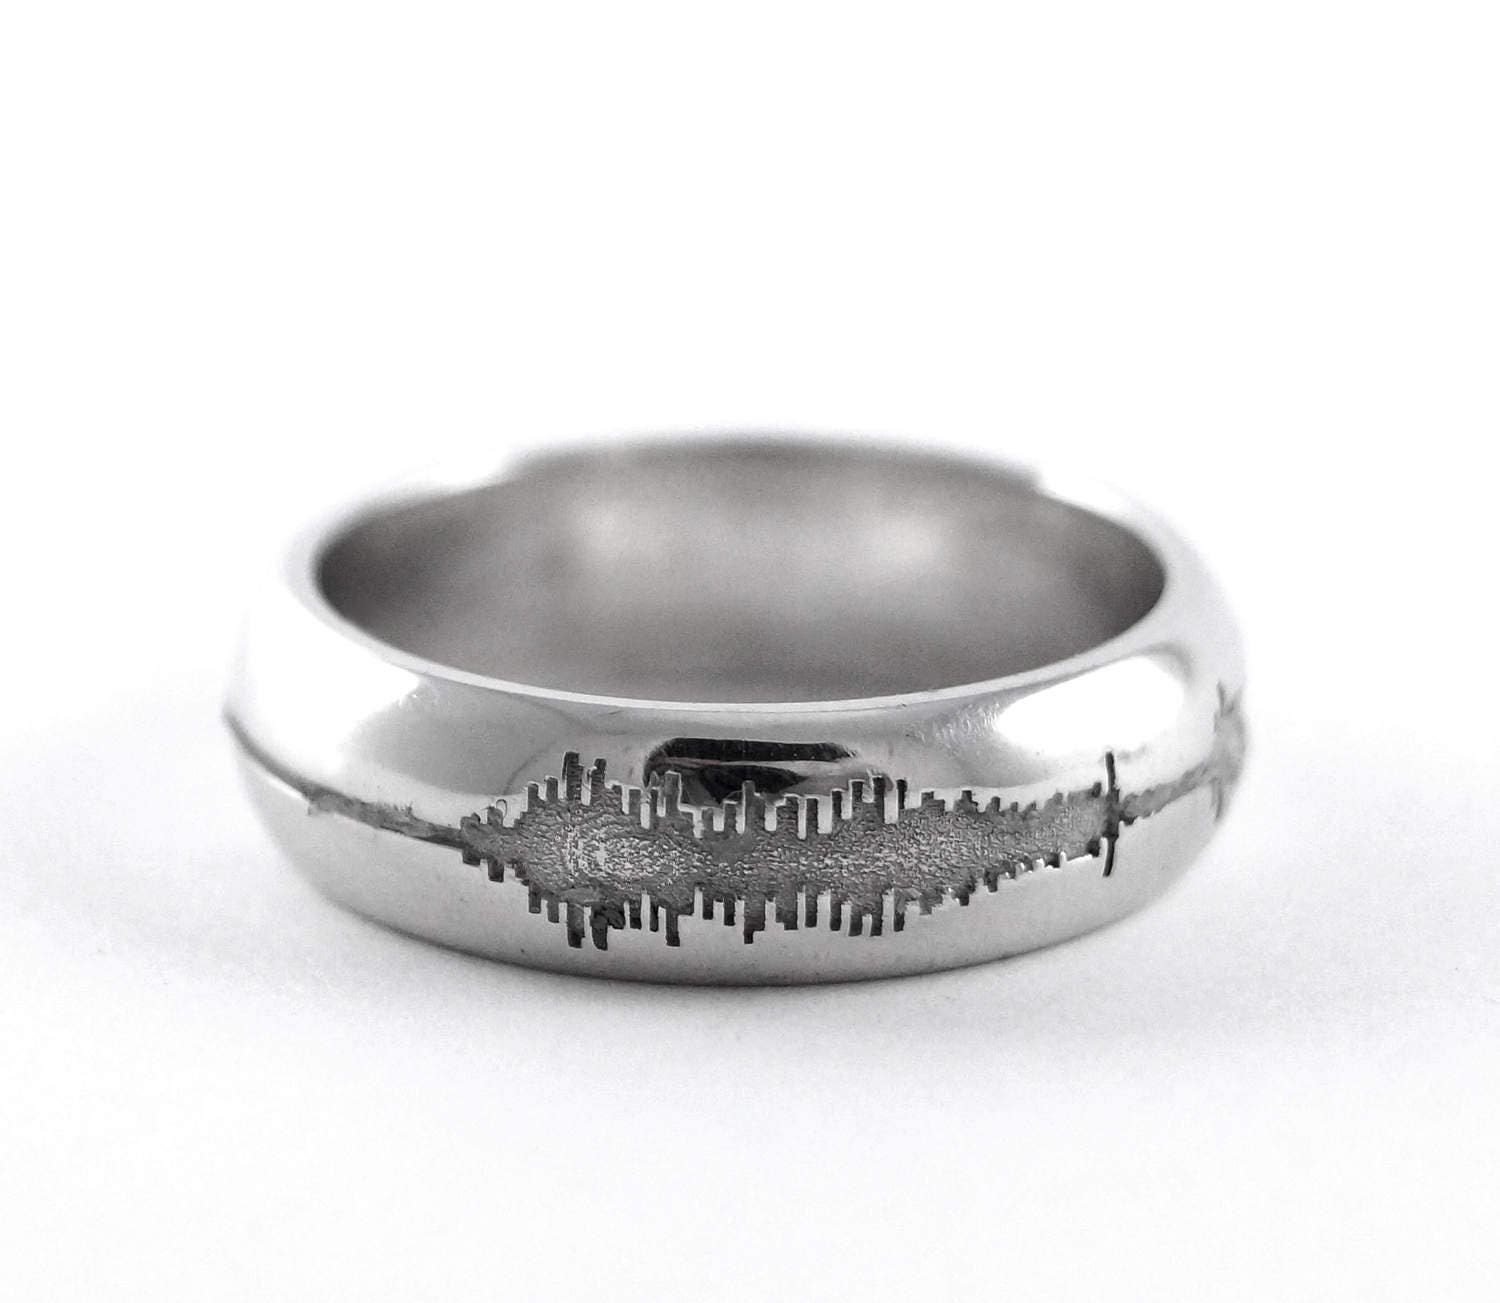 printed printing diamond rings with ring custom s proposes man uses wedding to design news